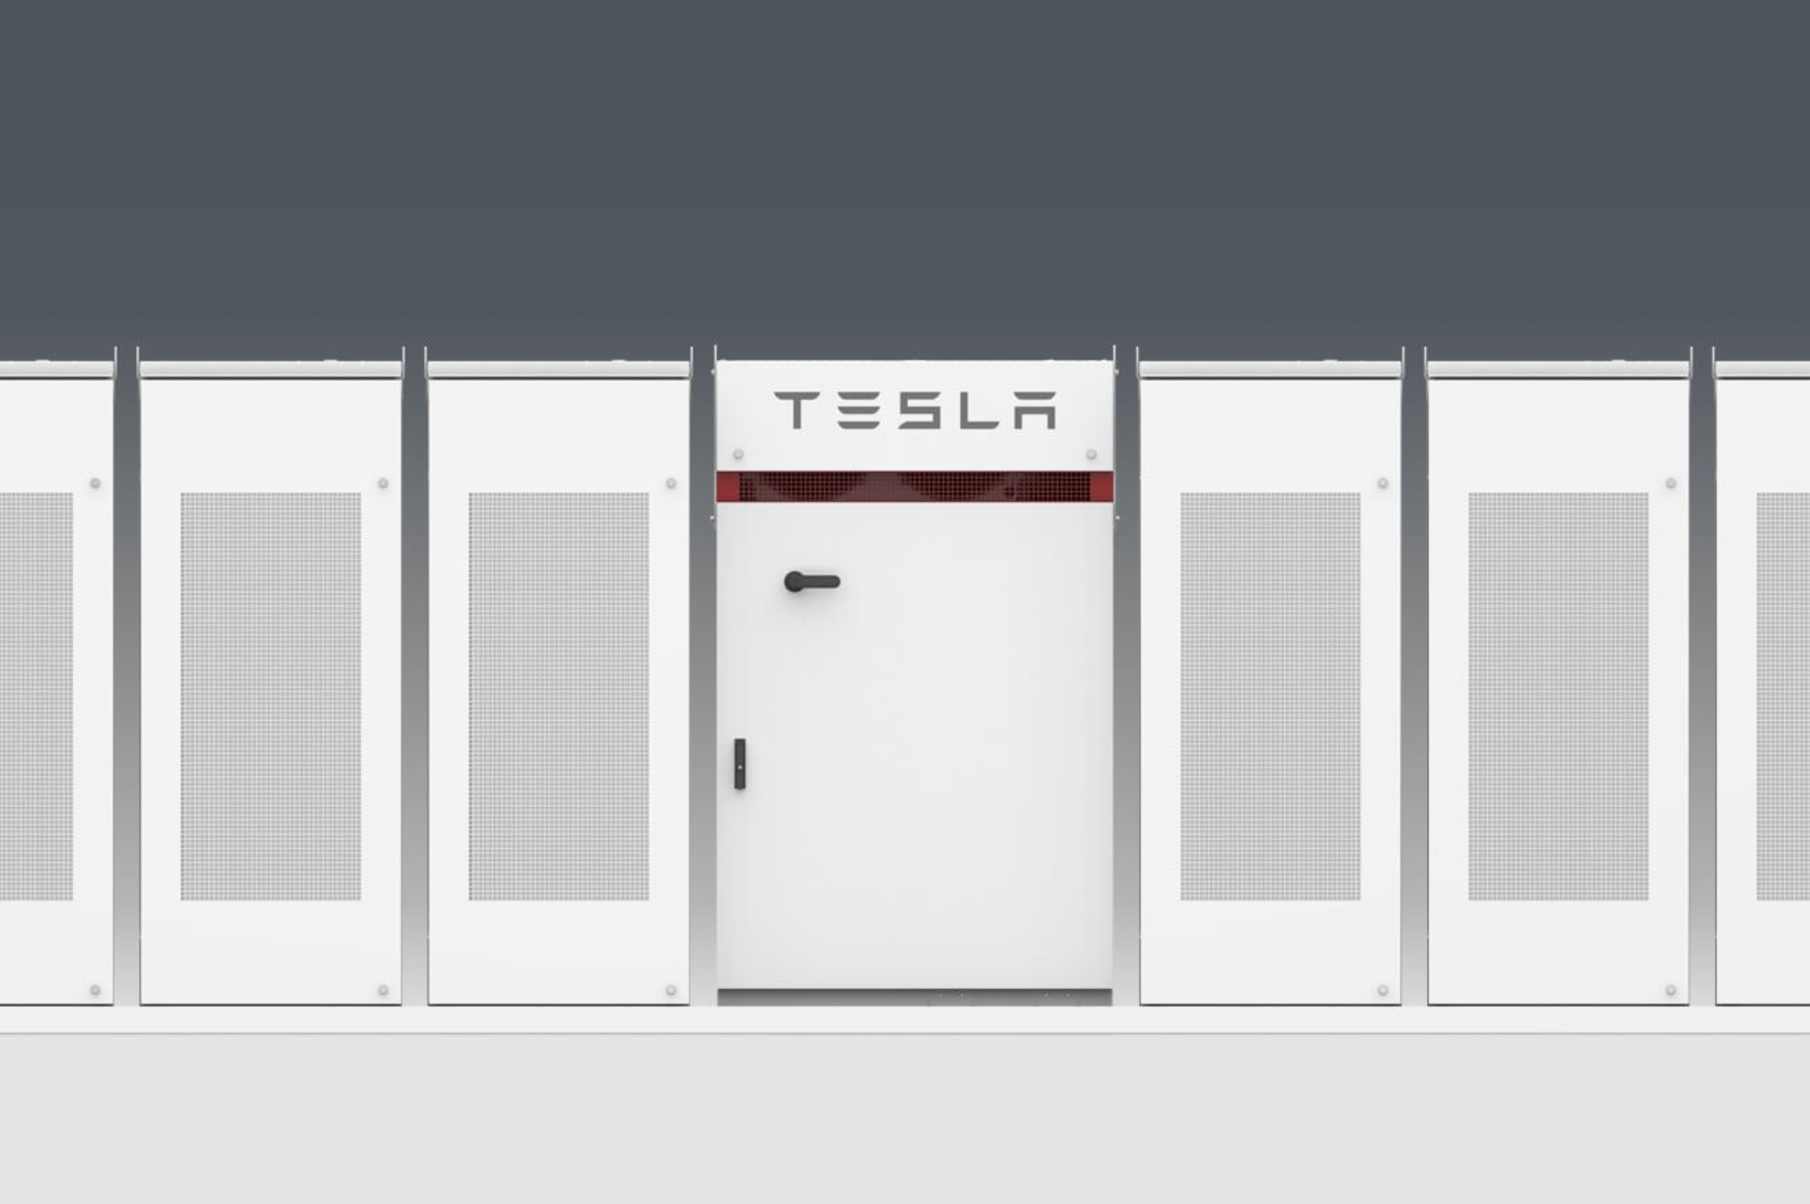 Tesla Is Building the World's Biggest Battery Plant. Experts Say It 'Has No Business Case'